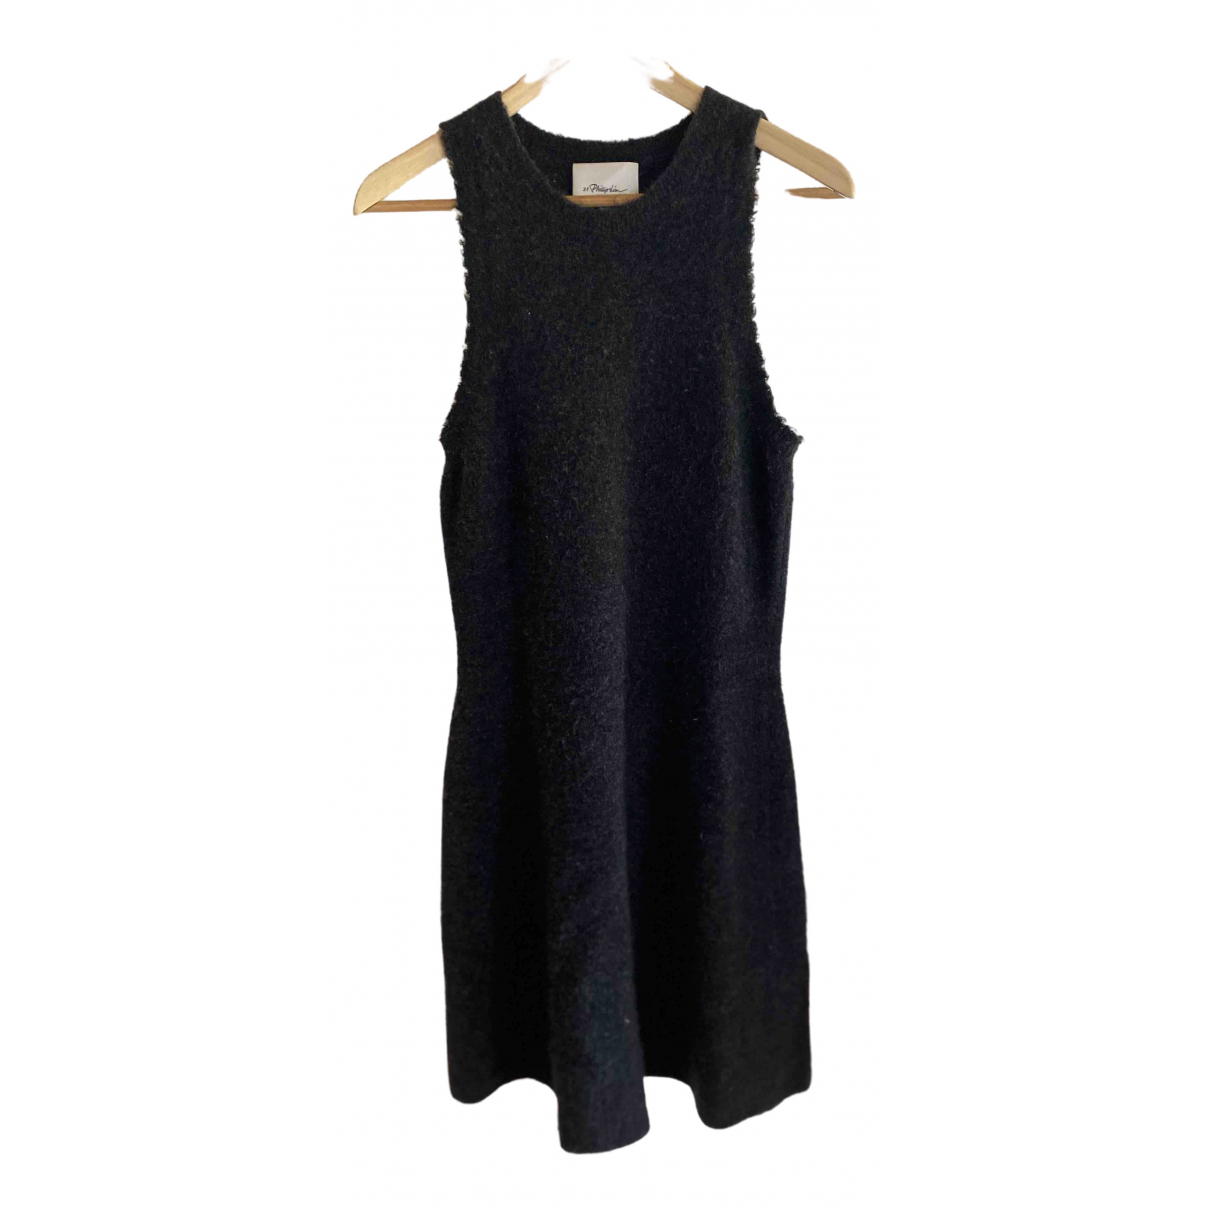 3.1 Phillip Lim \N Anthracite Knitwear for Women S International